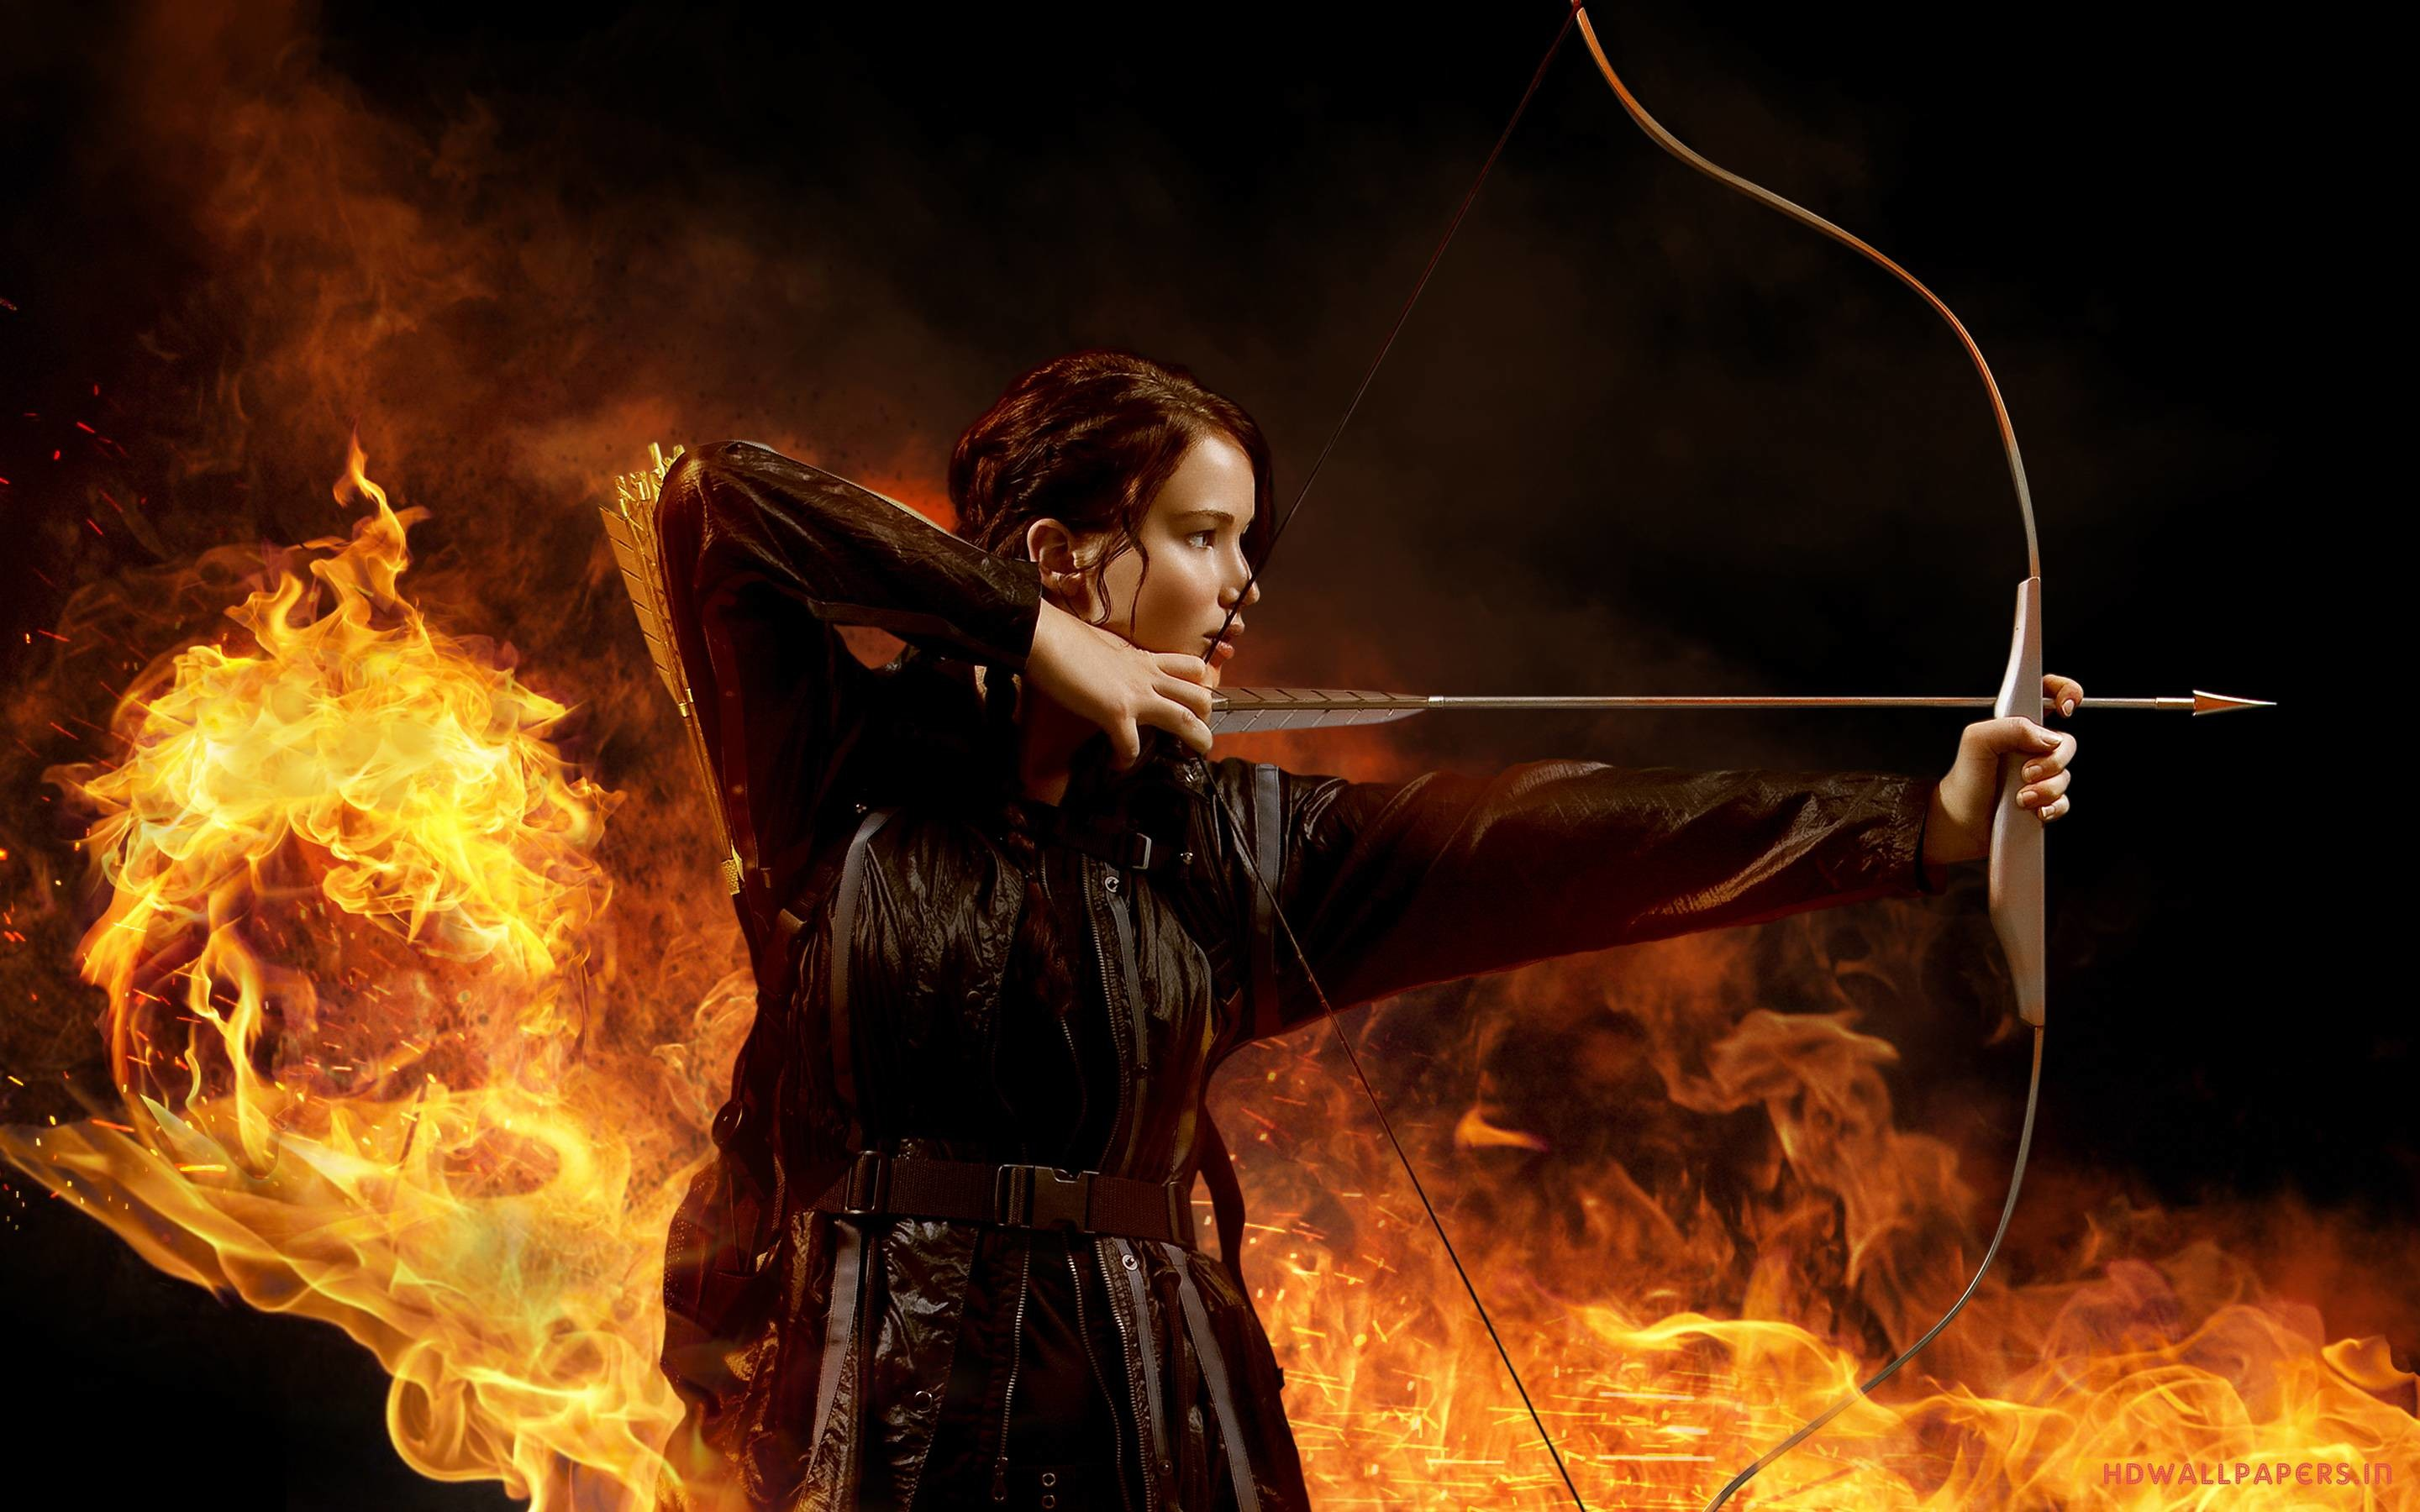 2880x1800 Jennifer Lawrence In The Hunger Games Wallpapers